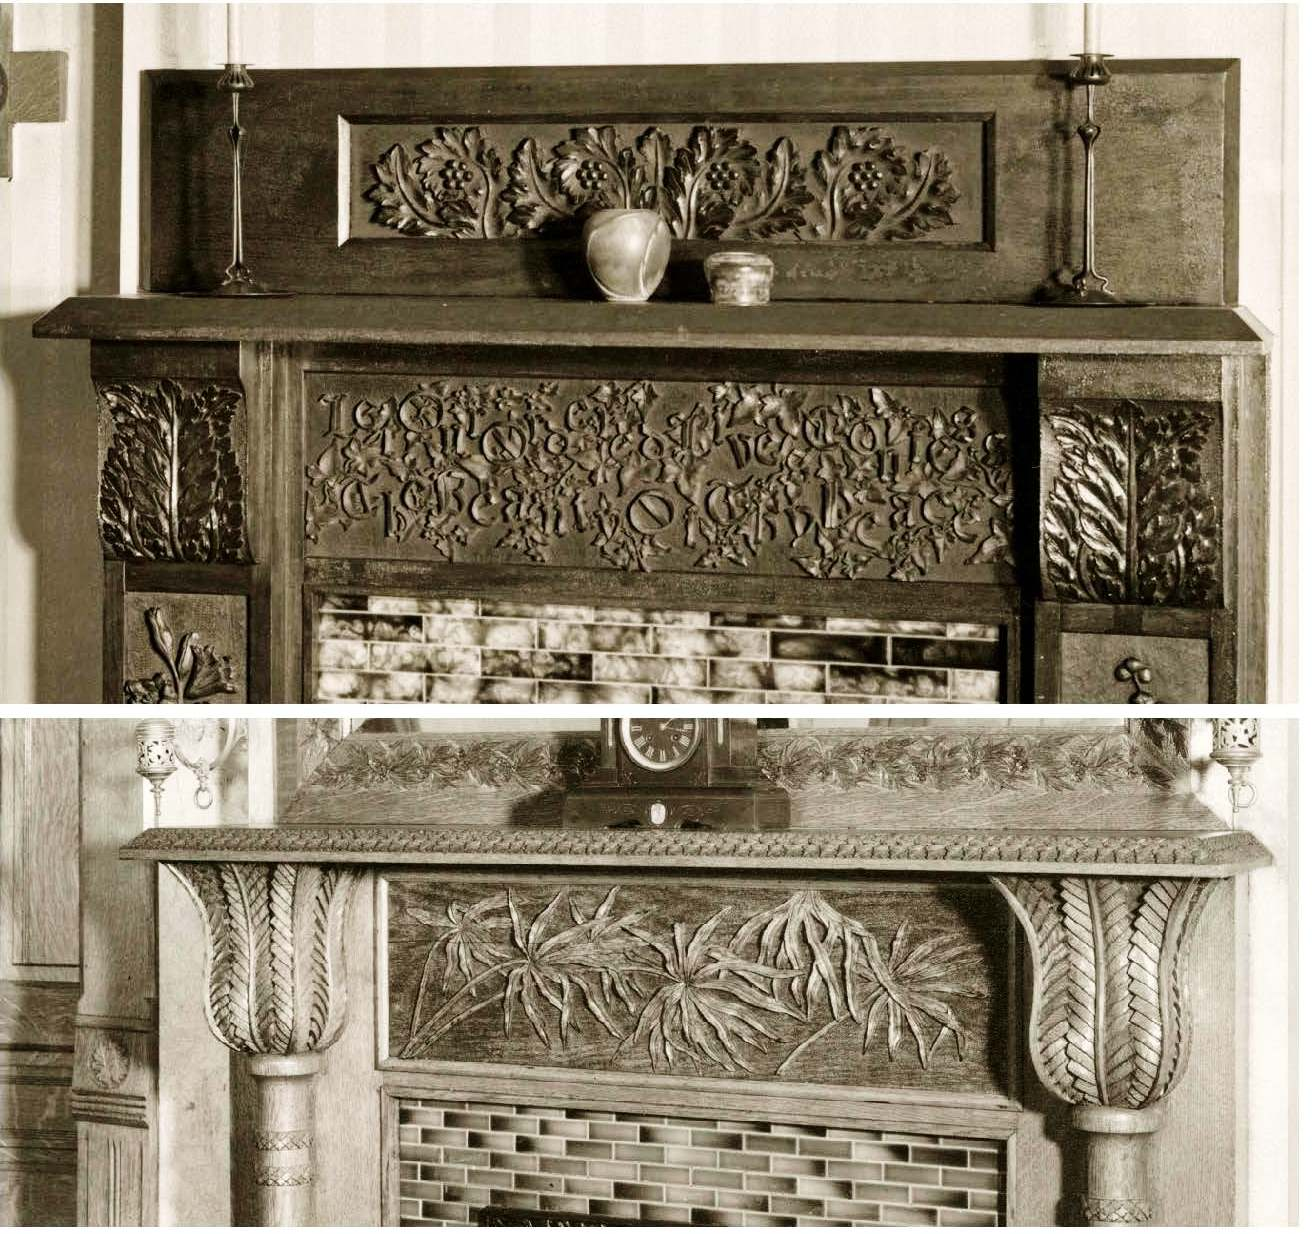 Indianapolis Collected: The Mystery of the Missing Mantels